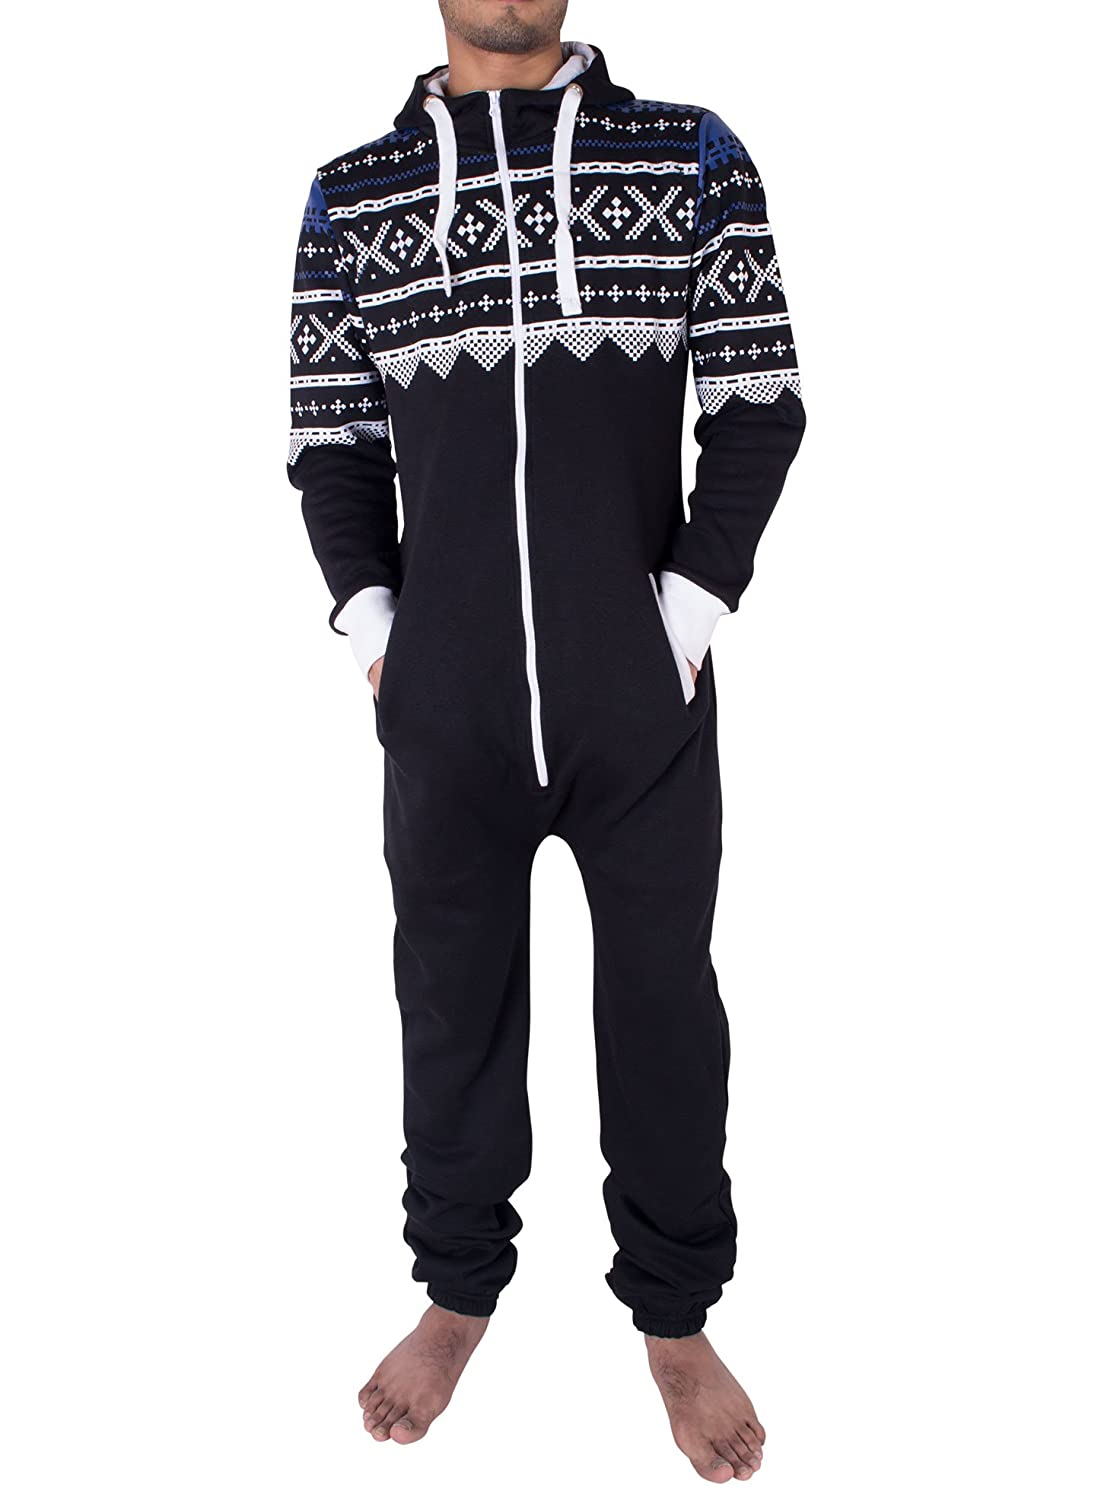 bcbfb4cd19c7 Noroze Mens Hoodie Jumpsuit Onesie One Piece Pajamas at Amazon Men s  Clothing store